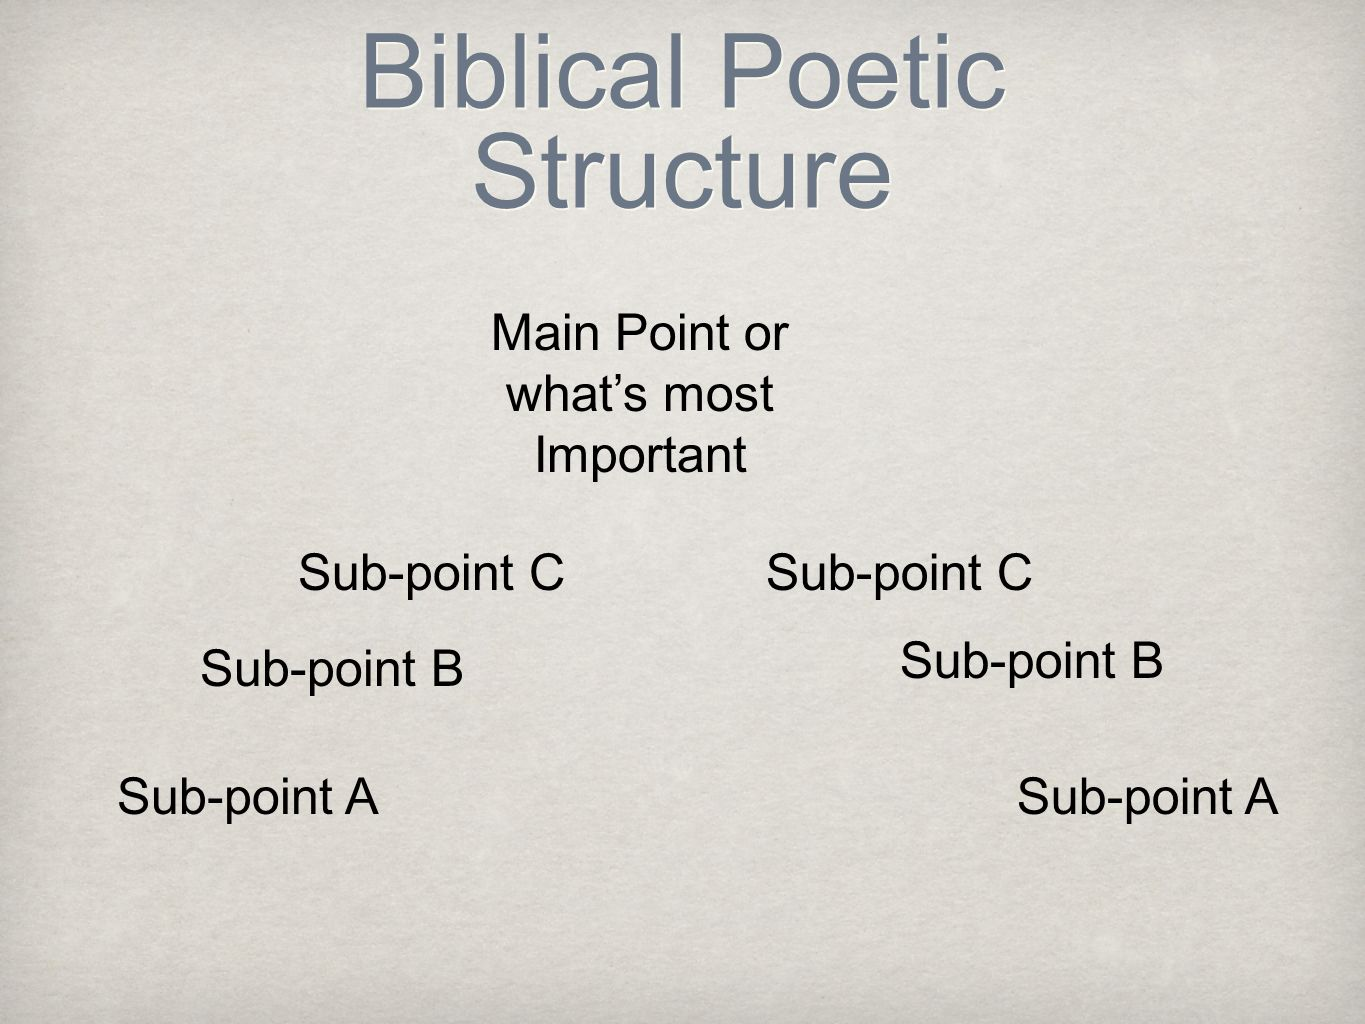 Biblical Poetic Structure